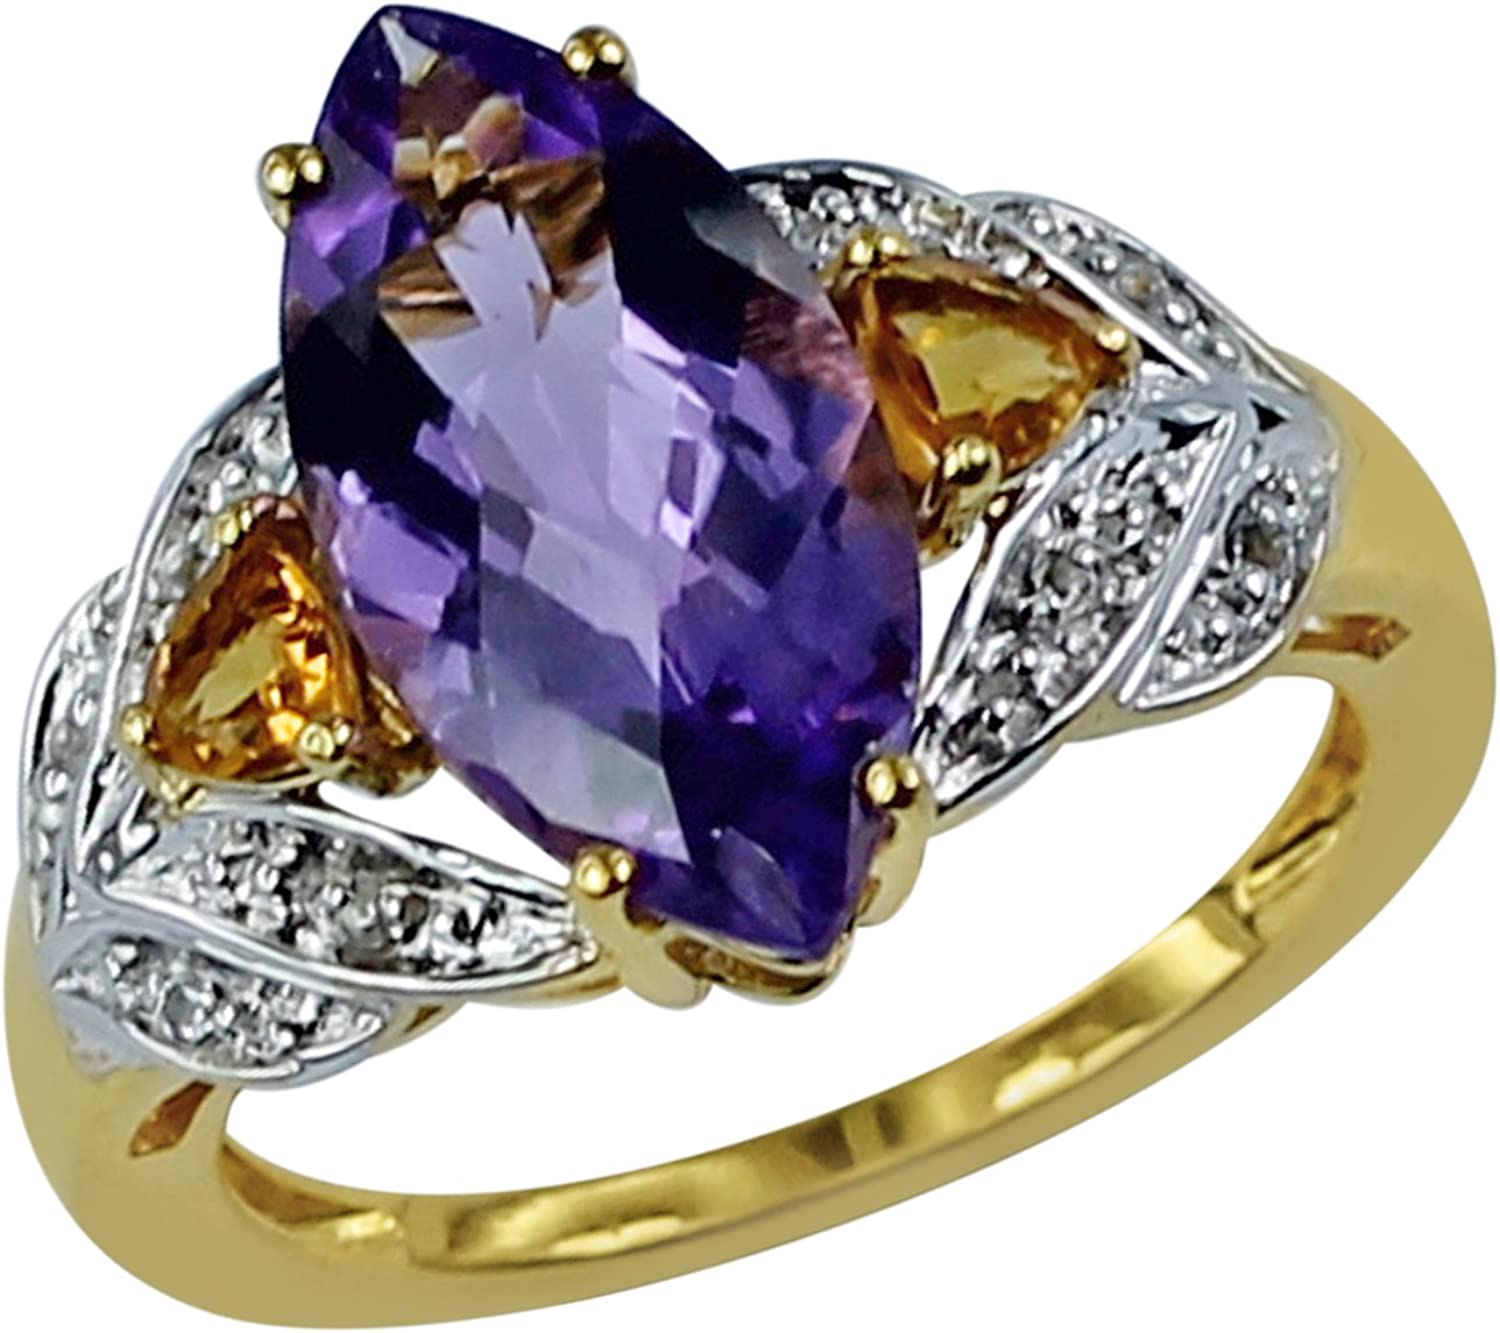 Carillon 3.08 Carat Amethyst Max 43% OFF Natural Max 57% OFF Non-Treated Shape Marquise